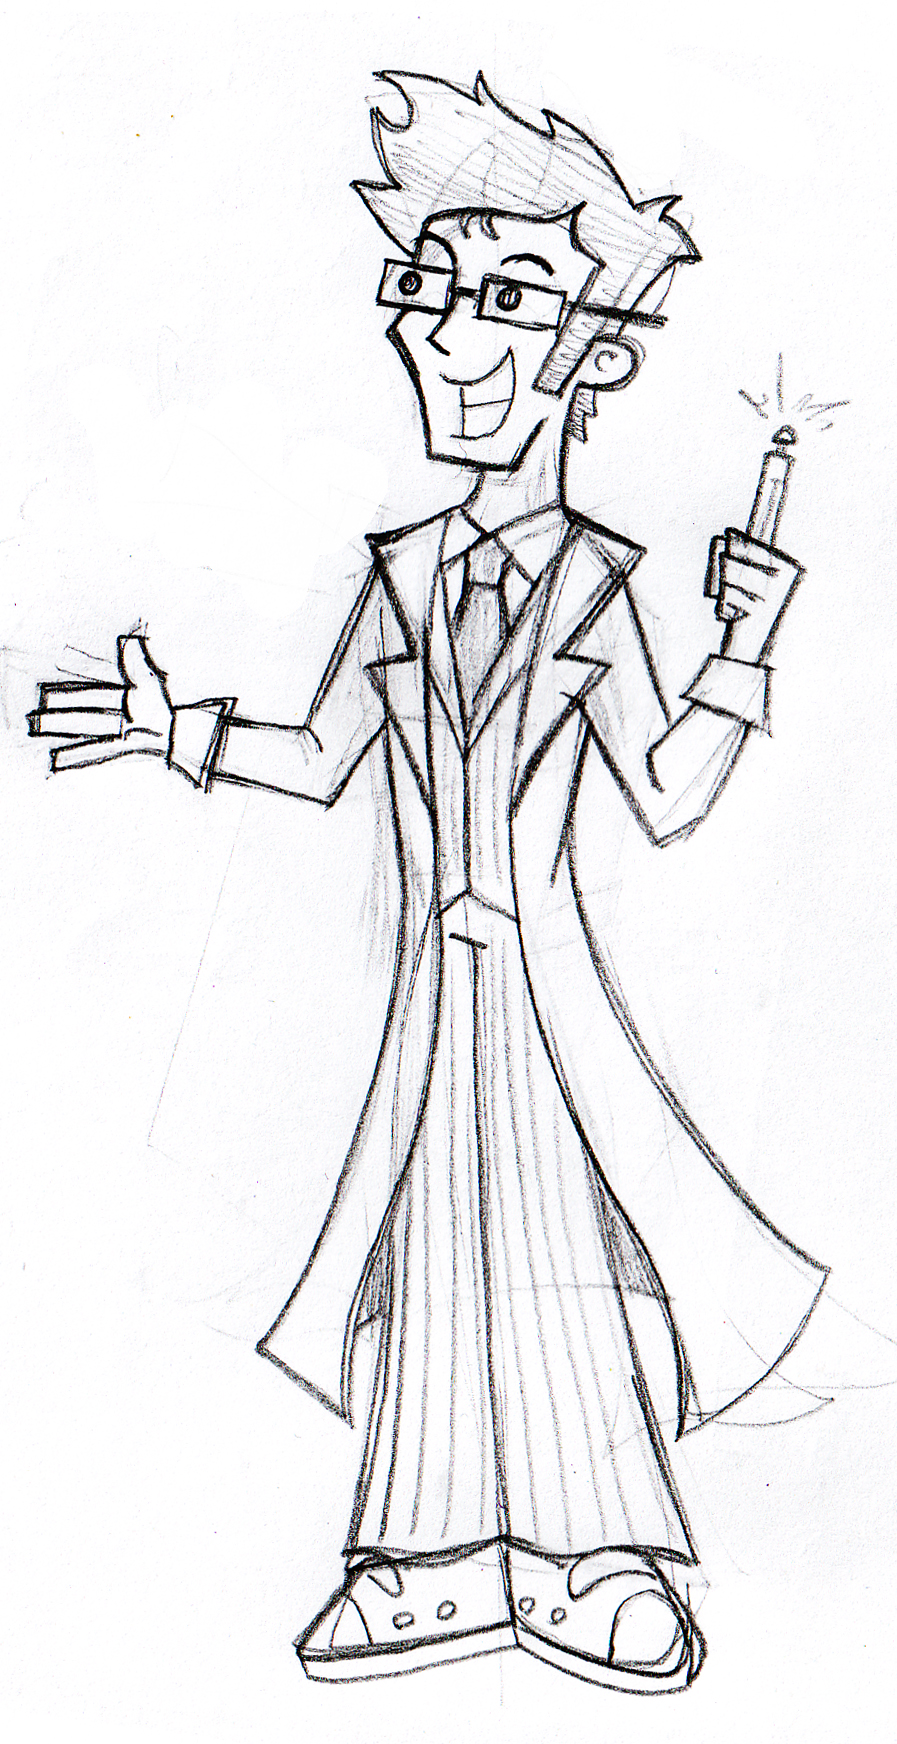 SkeCom: 10th Doctor by JaviDLuffy